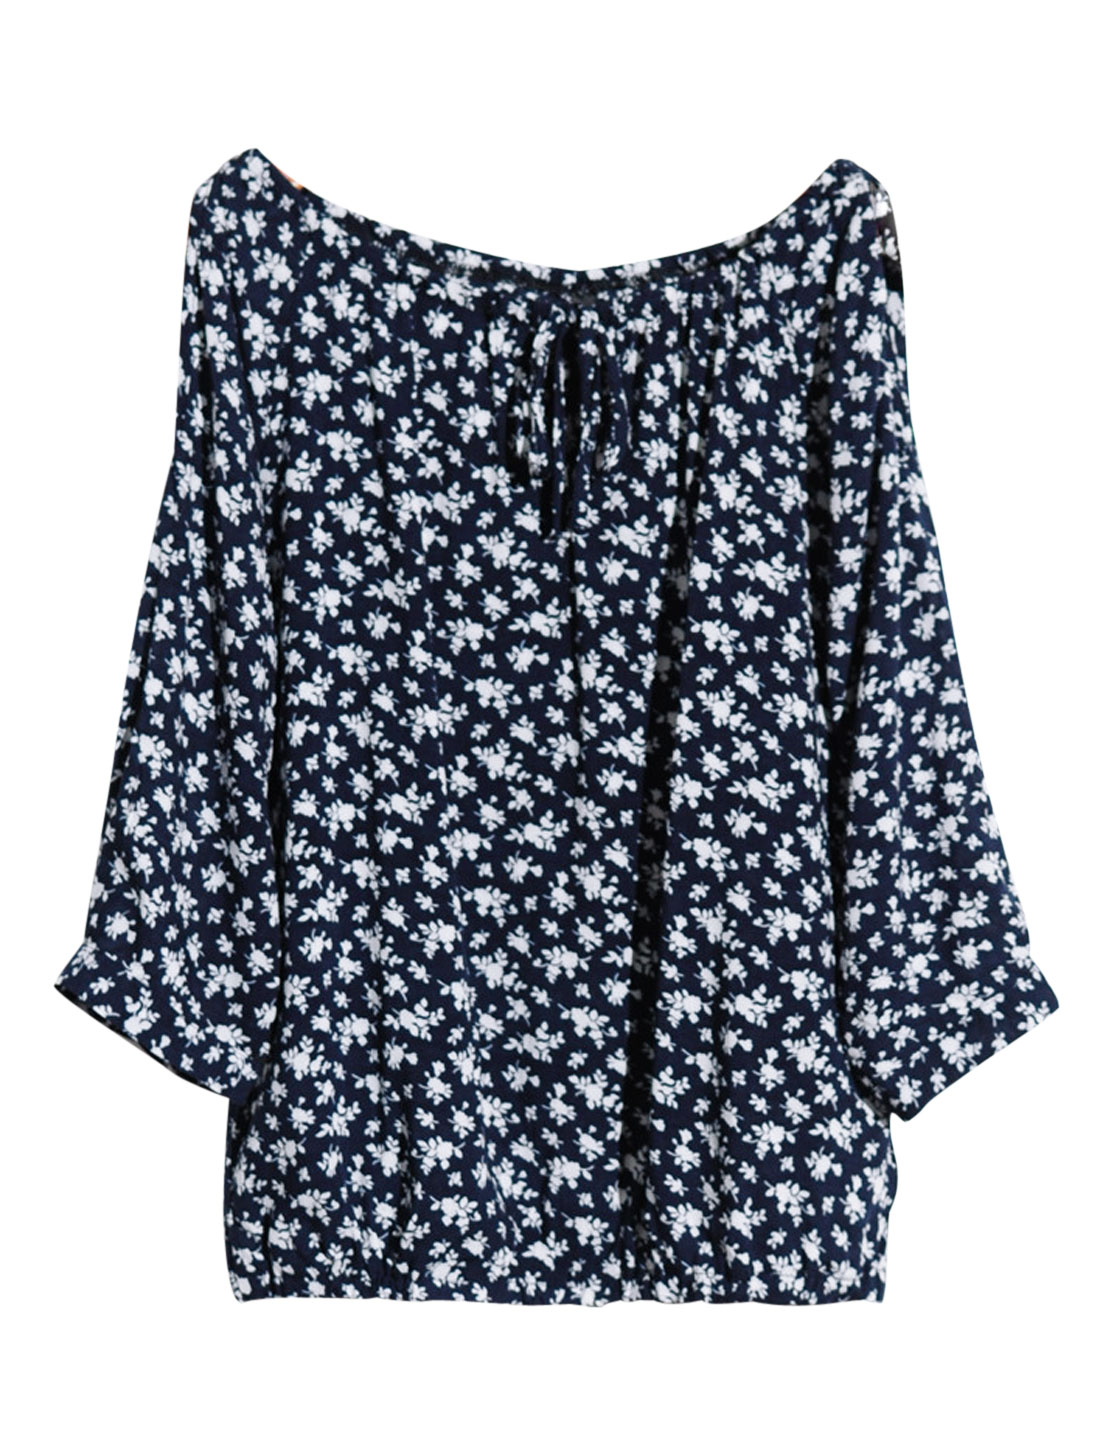 Cozy Fit Soft Floral Pattern Chiffon Top for Lady Navy Blue XS